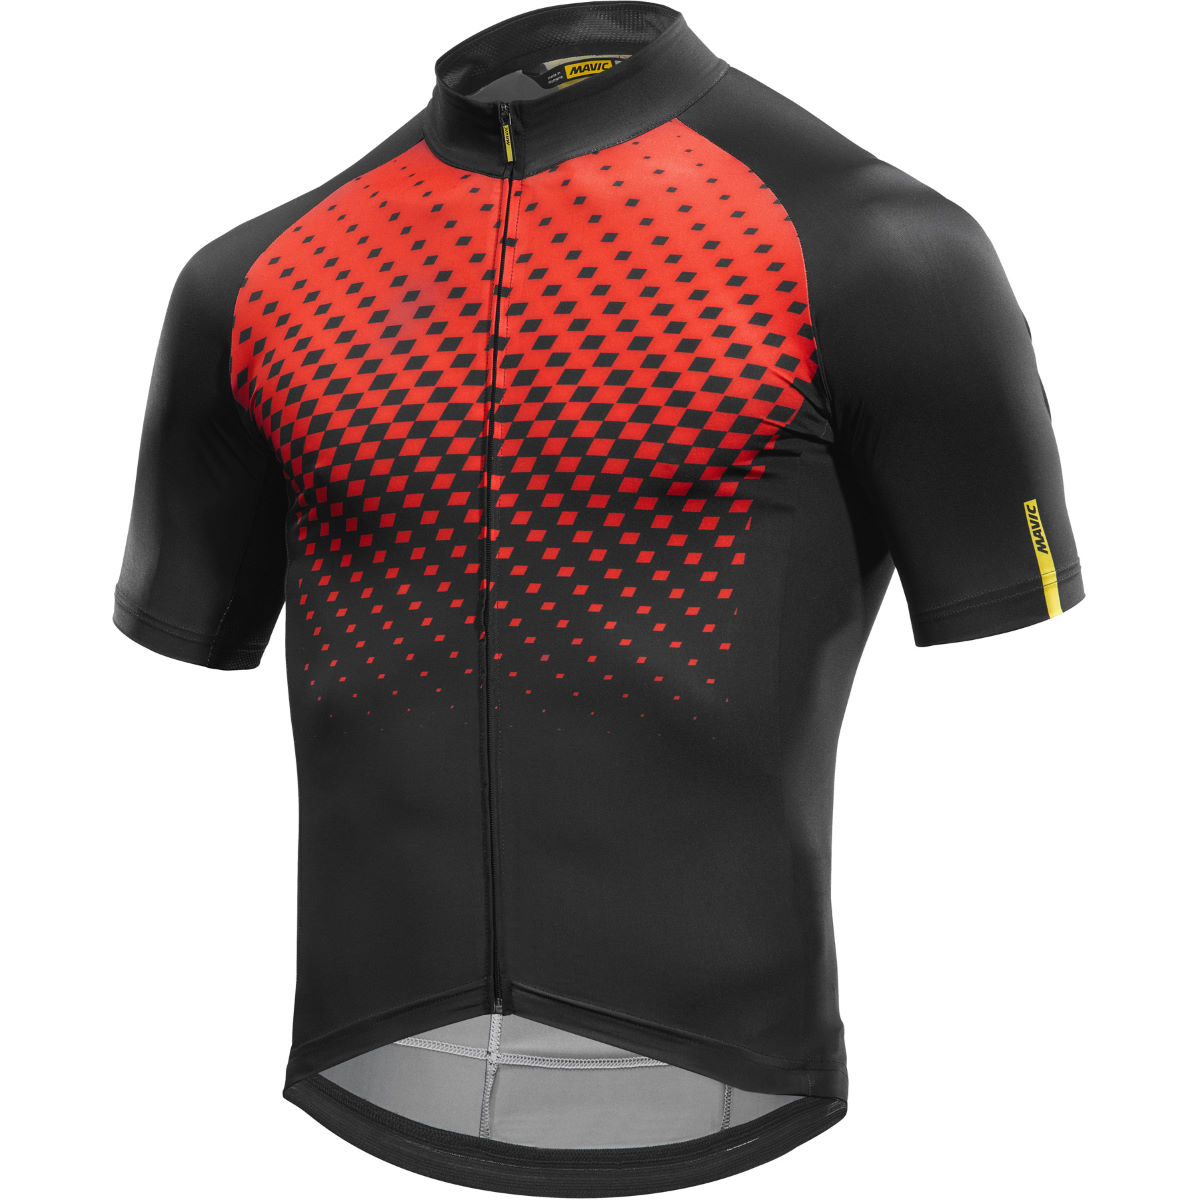 Maillot Mavic Cosmic Graphic - M Fiery Red/Black Maillots vélo à manches courtes